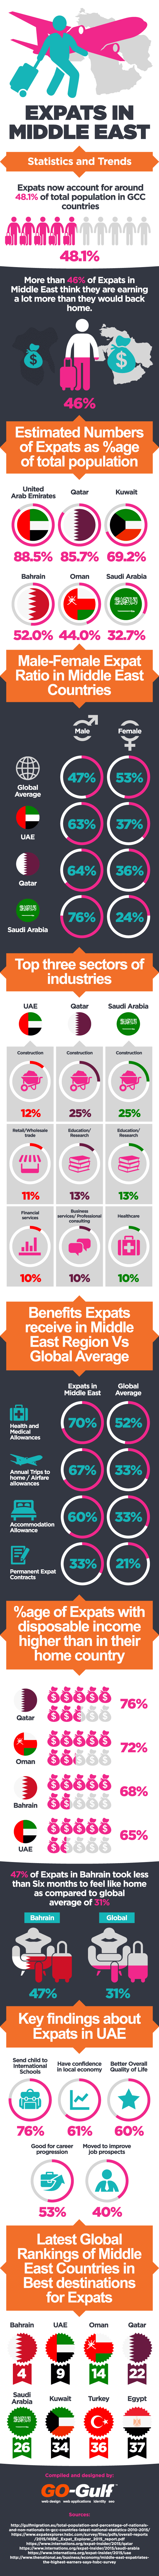 Expats in Middle East